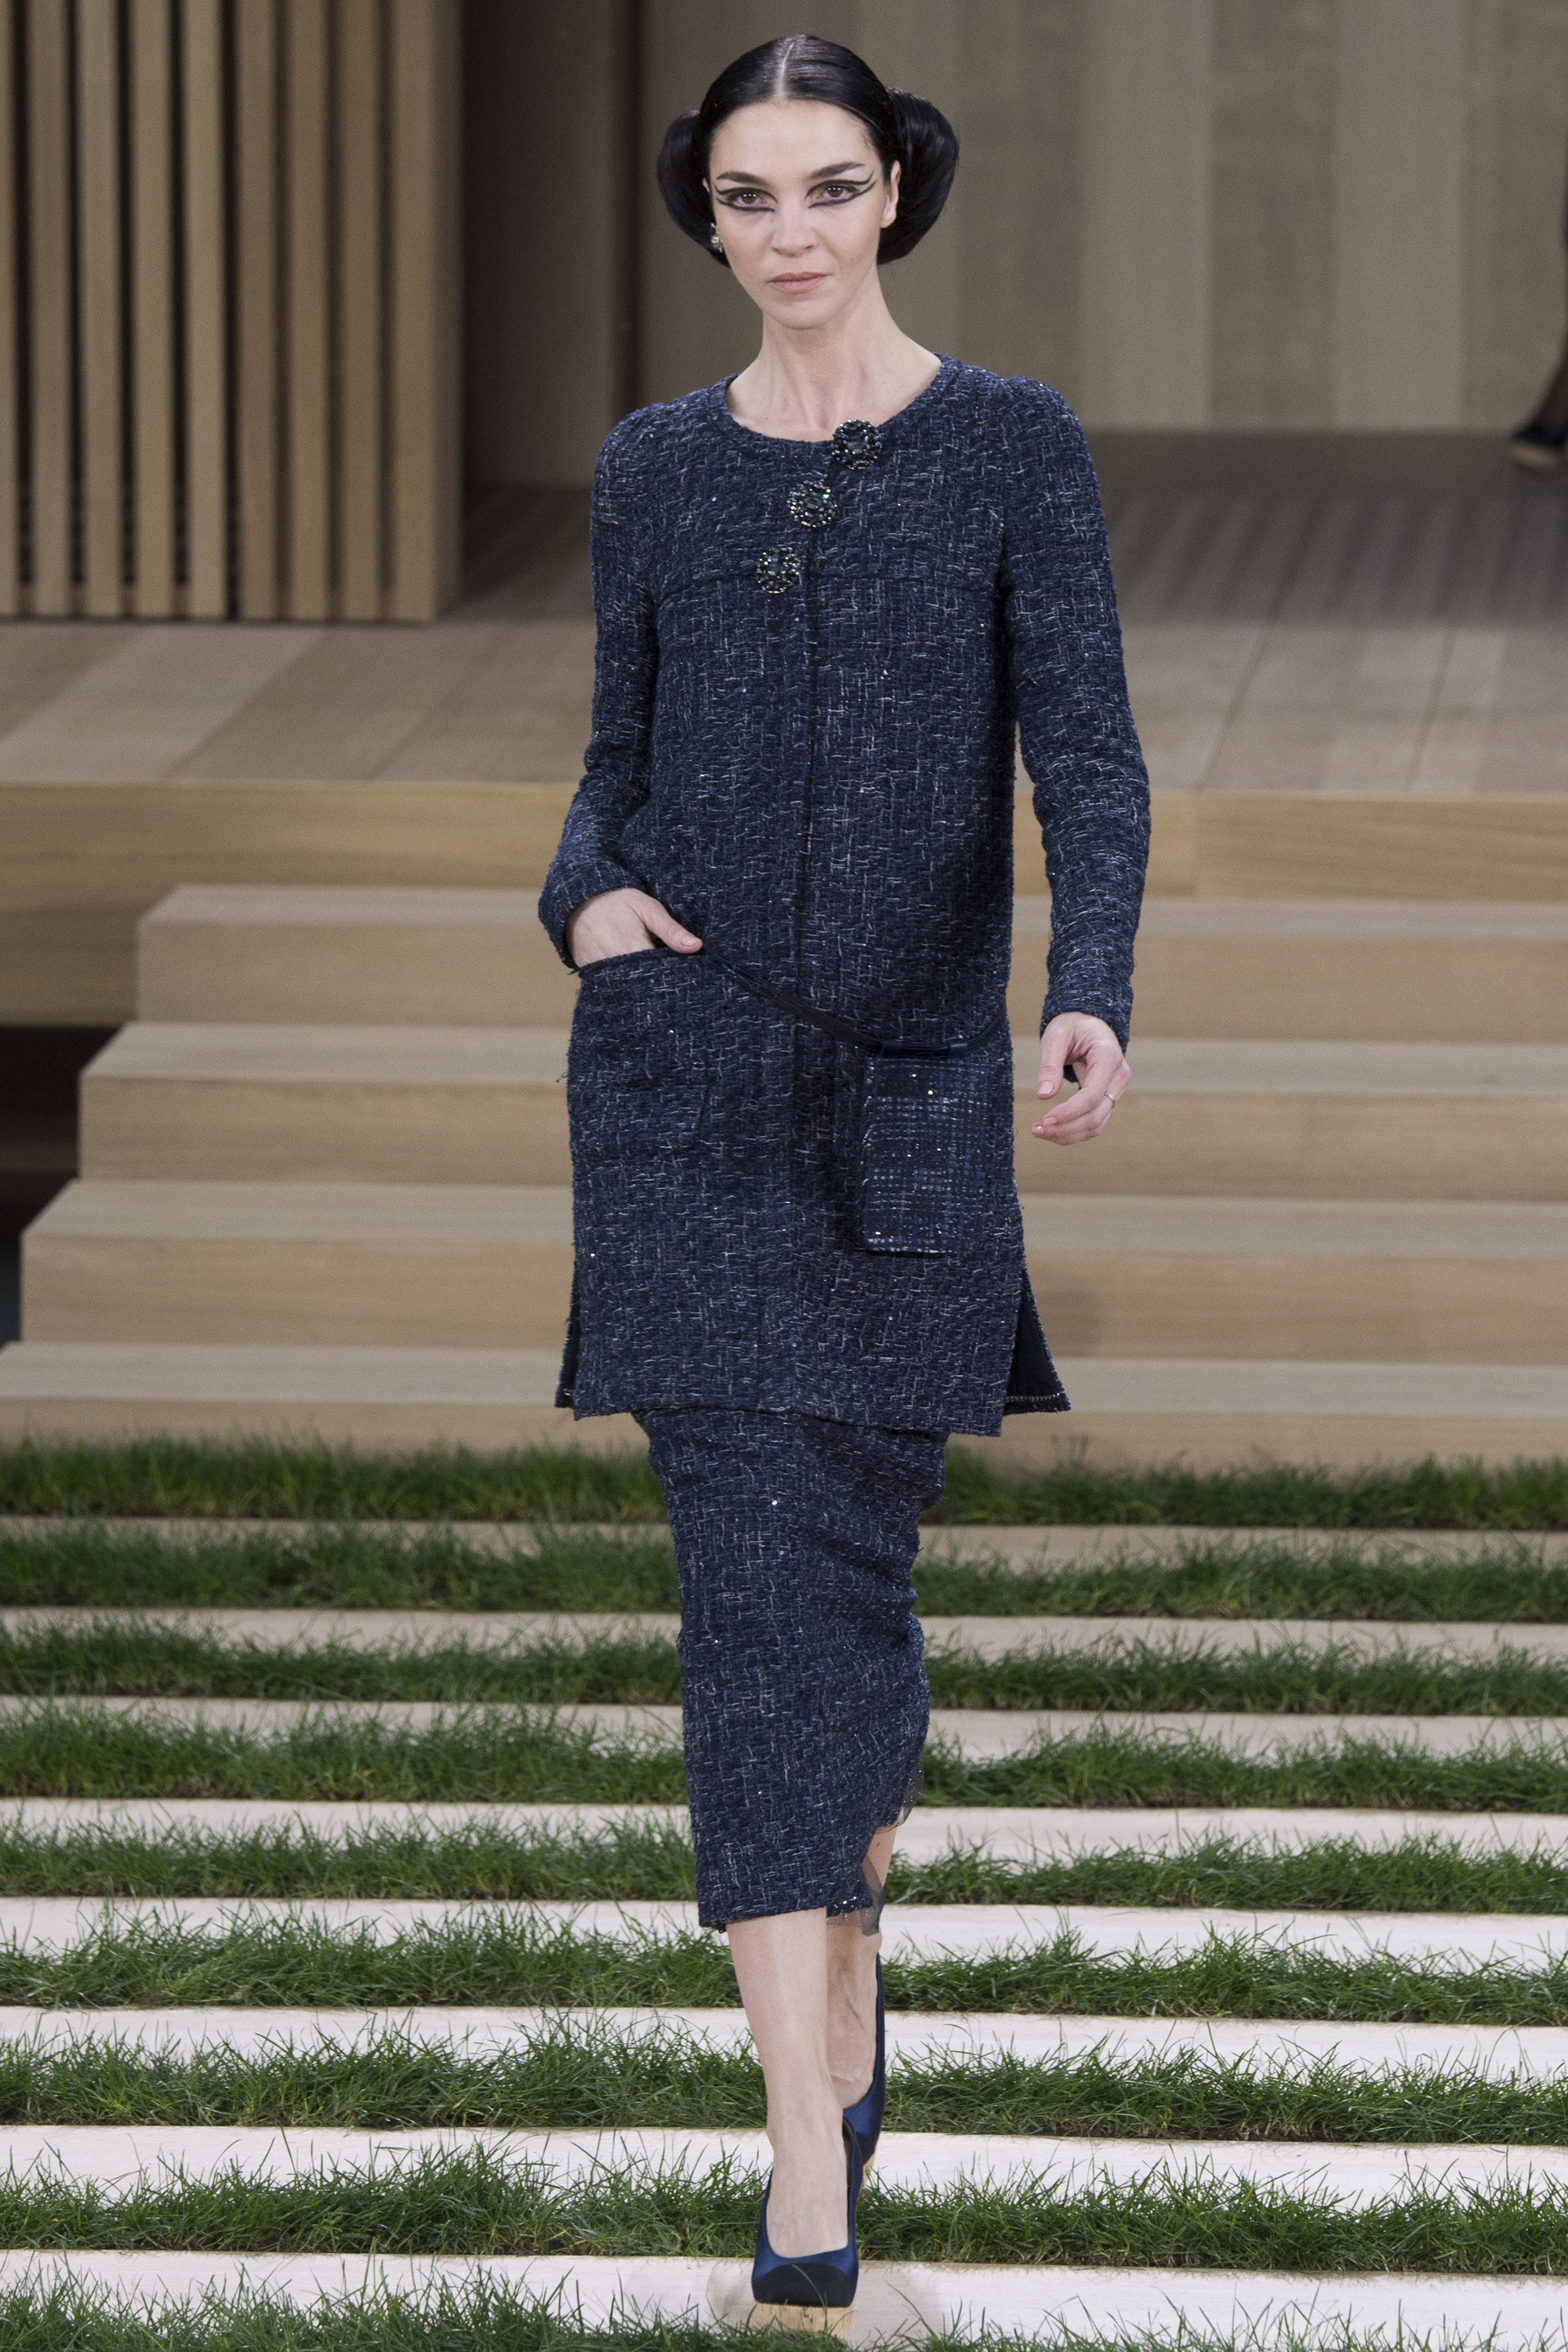 Chanel-Couture-Spring-2016-Paris-Fashion-Week-3.jpg